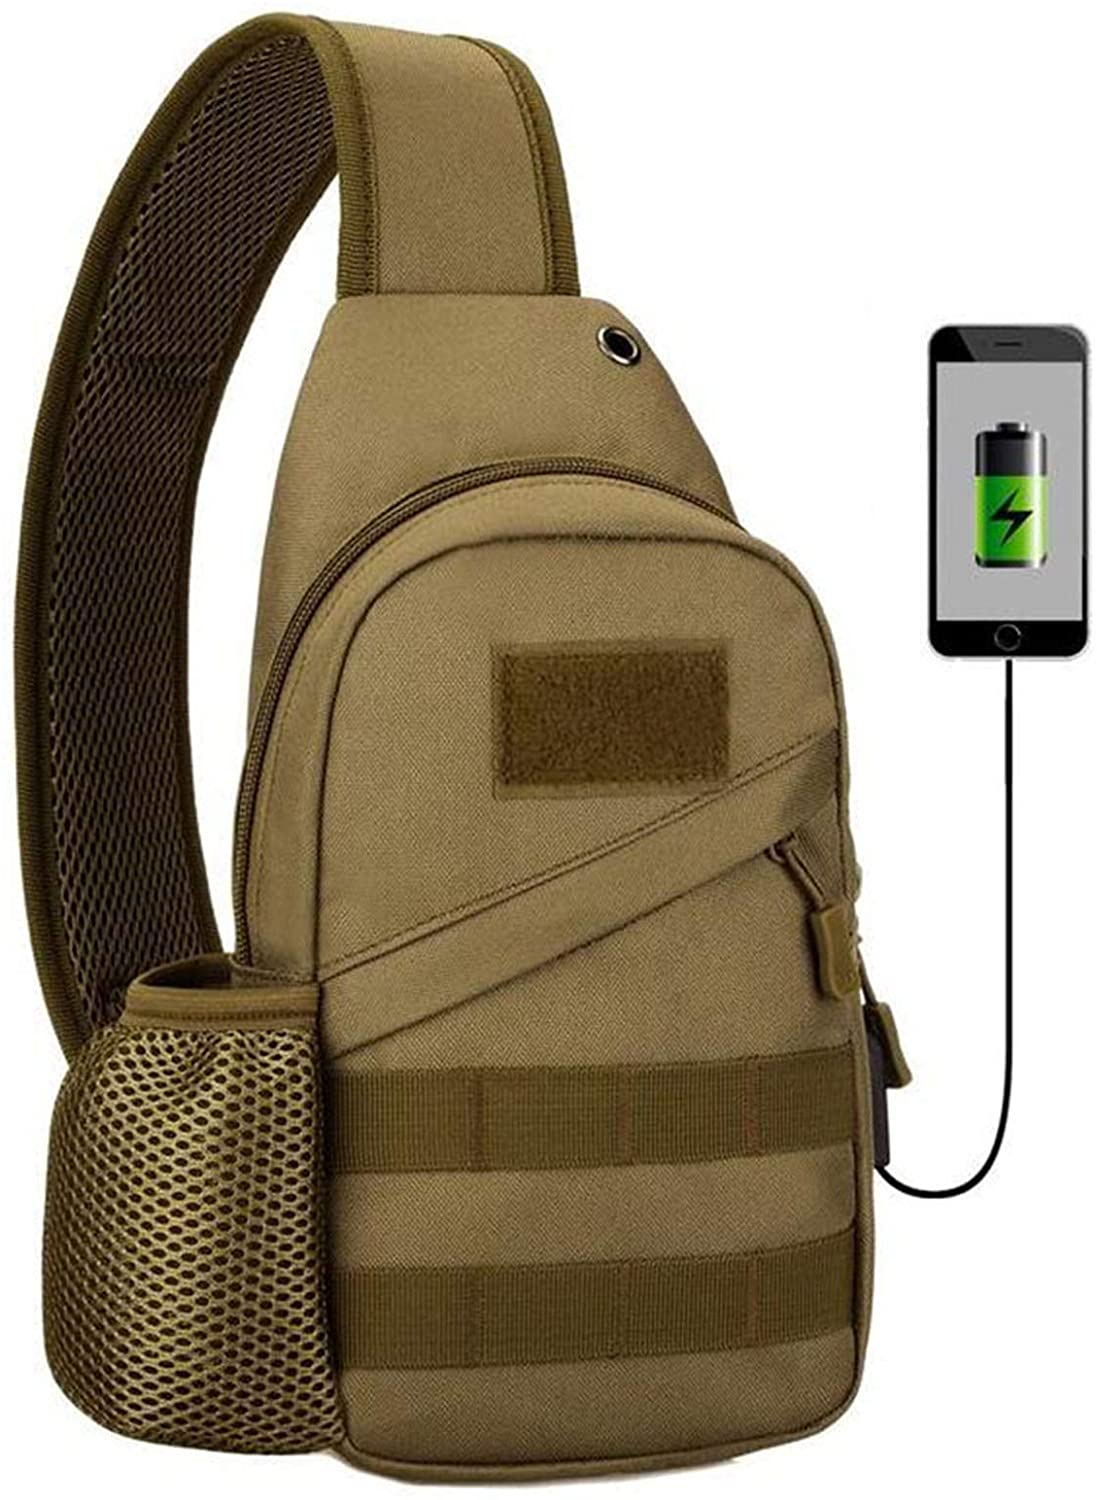 Compact and lightweight Sling Backpack with USB Charging Port & Headphone Hole Chest Shoulder Backpack Crossbody Bags